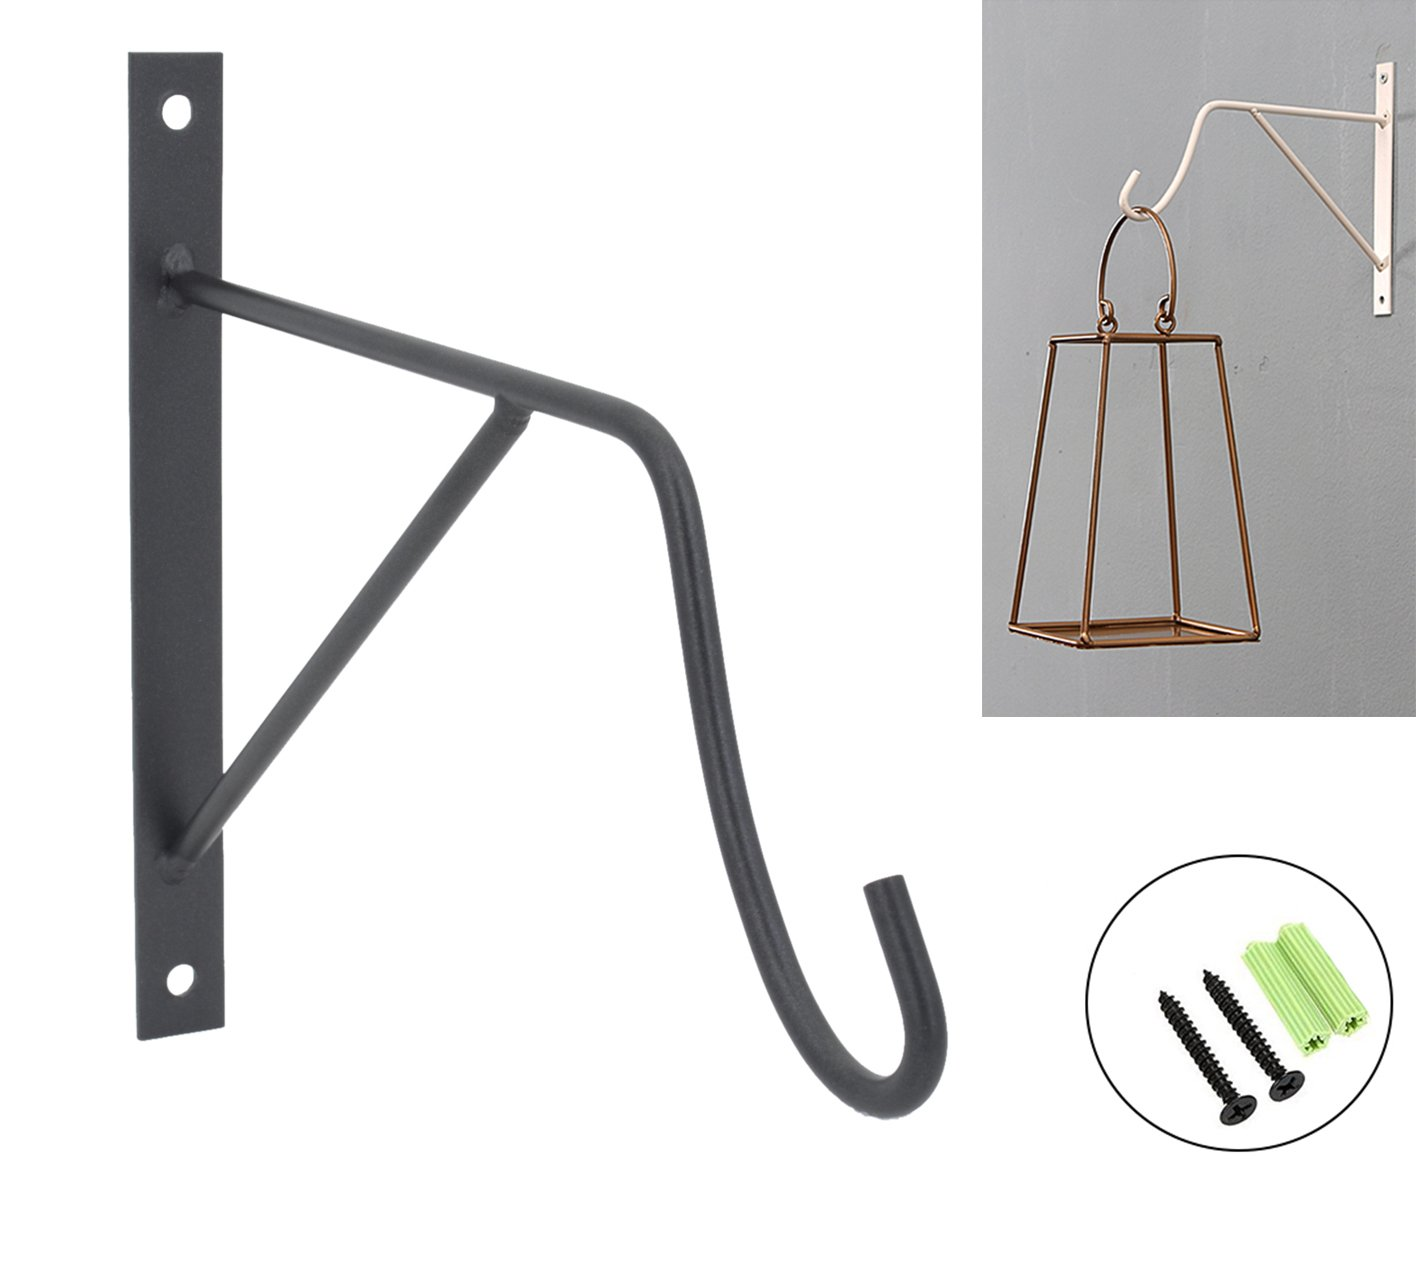 Iron Wall Garden Bracket Hook for Hanging Wind Chimes, Plants, Wind Spinners & Bird Feeders (Black-B) by OVOV